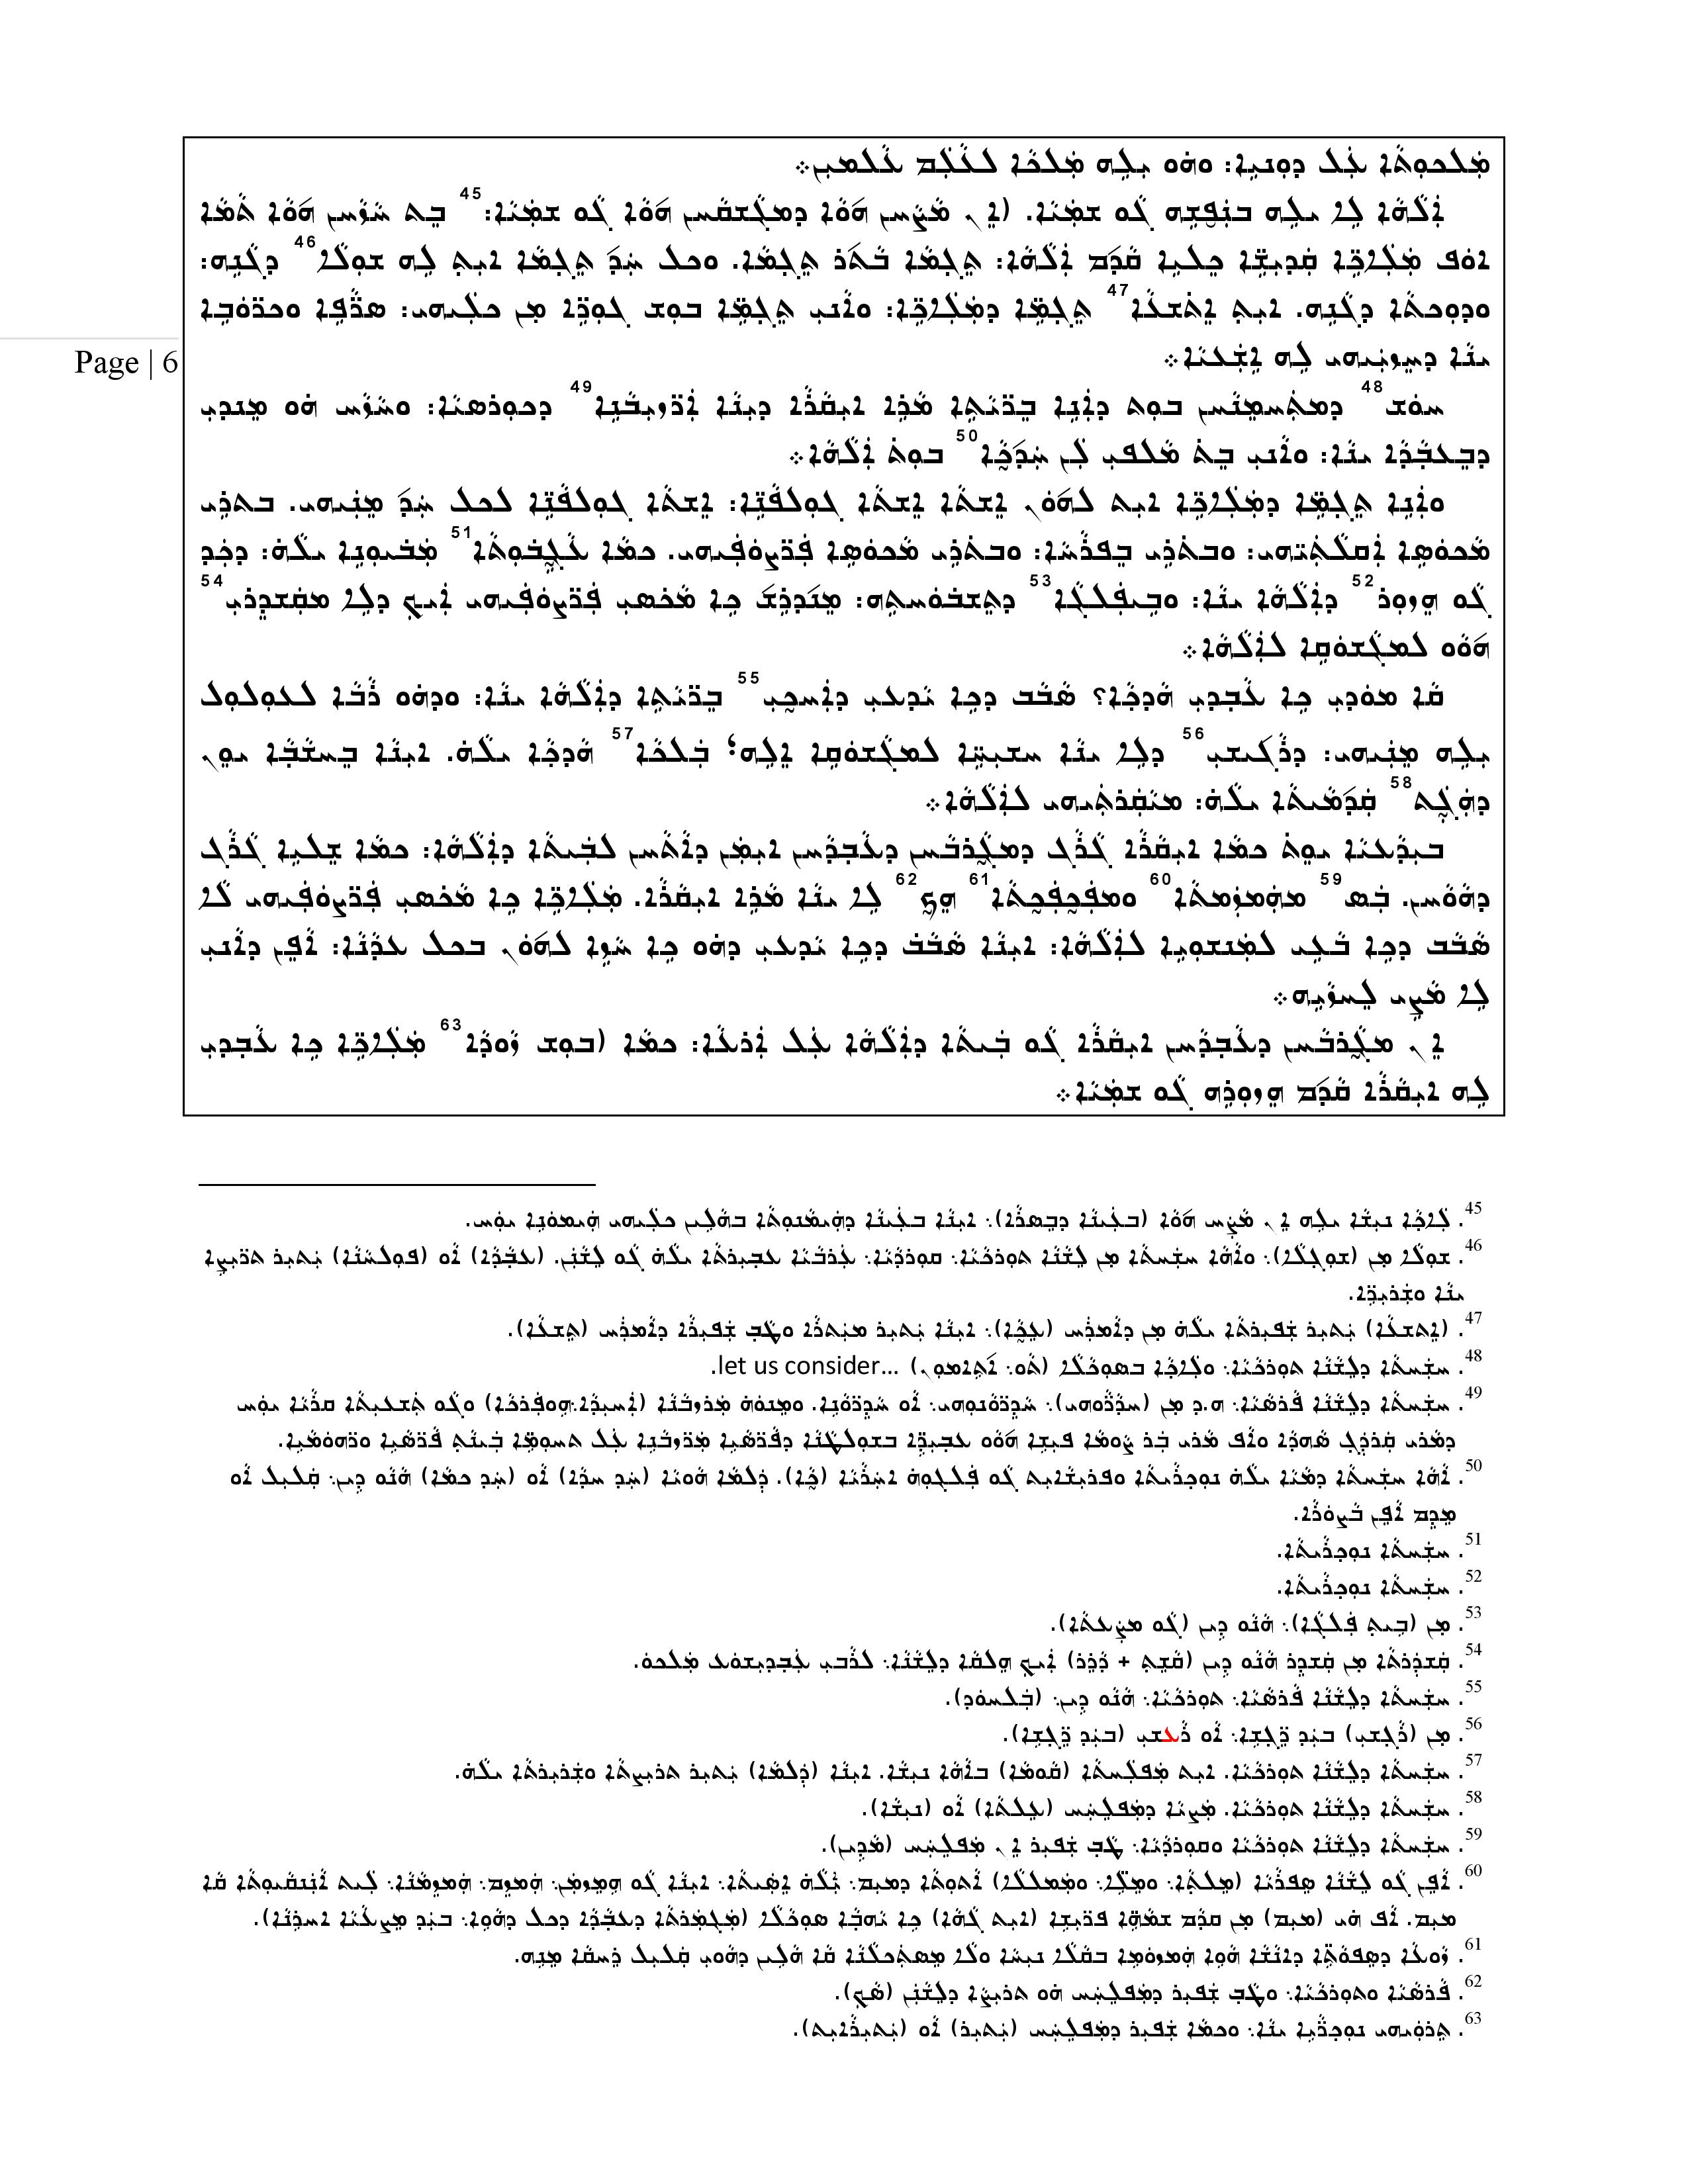 16-07-30-page-006